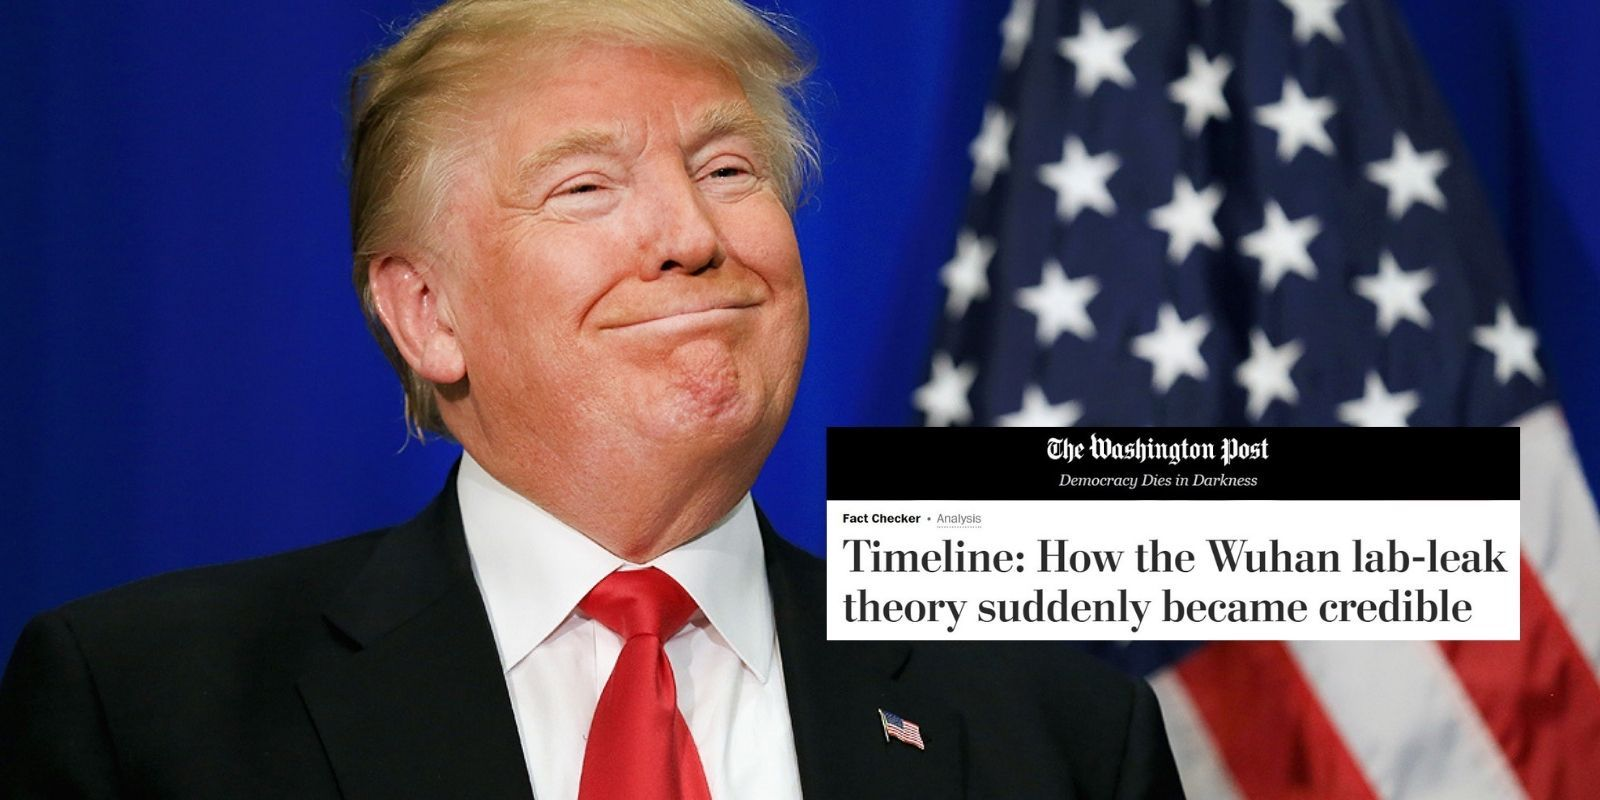 Establishment journalists confess they dismissed Wuhan lab leak theory because Trump said it